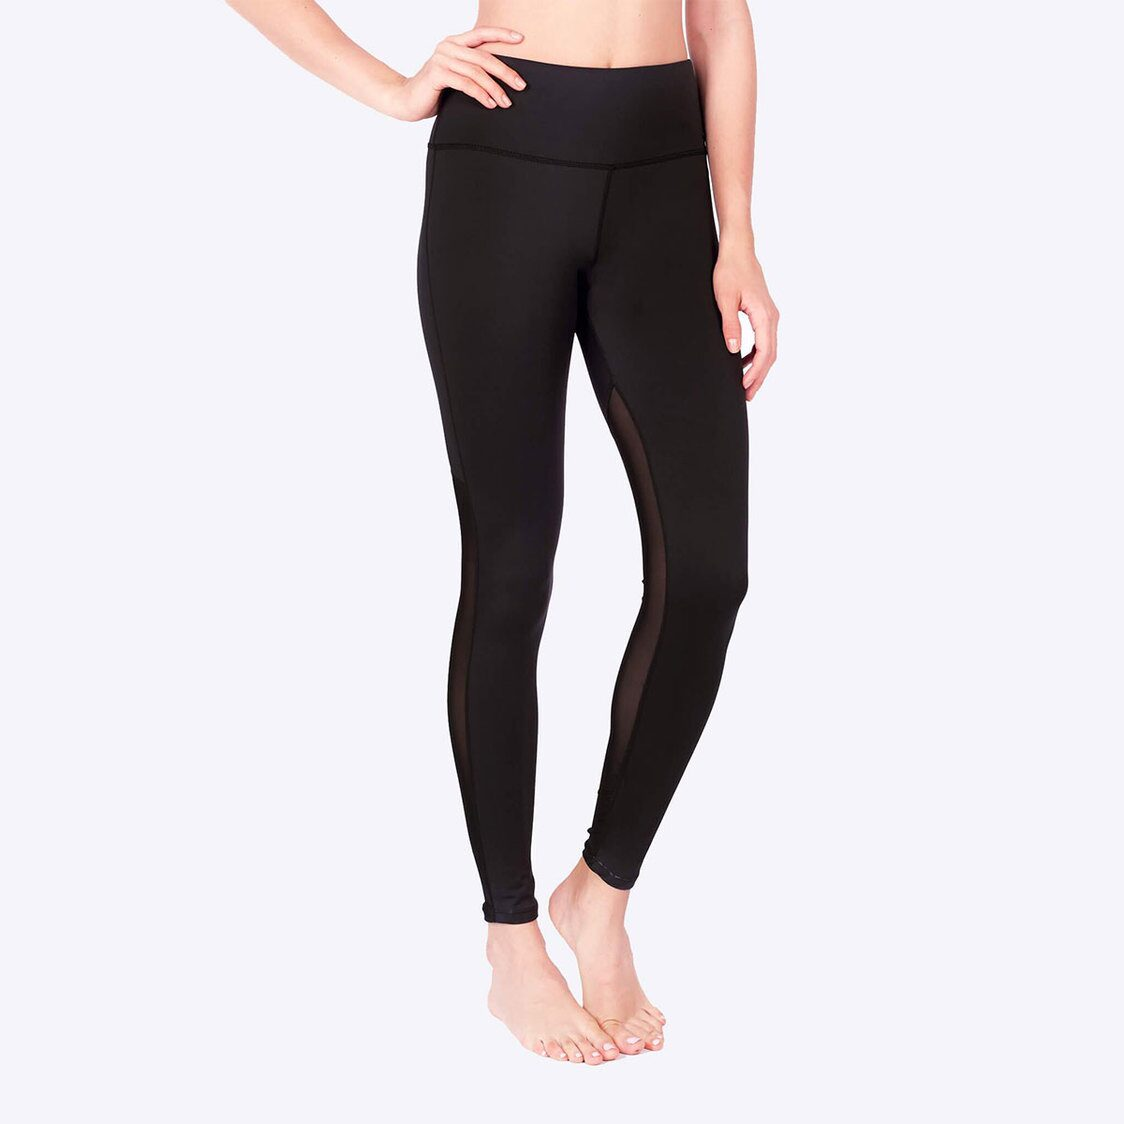 LIMITLESS Back Mesh Leggings with Keeperband in Black